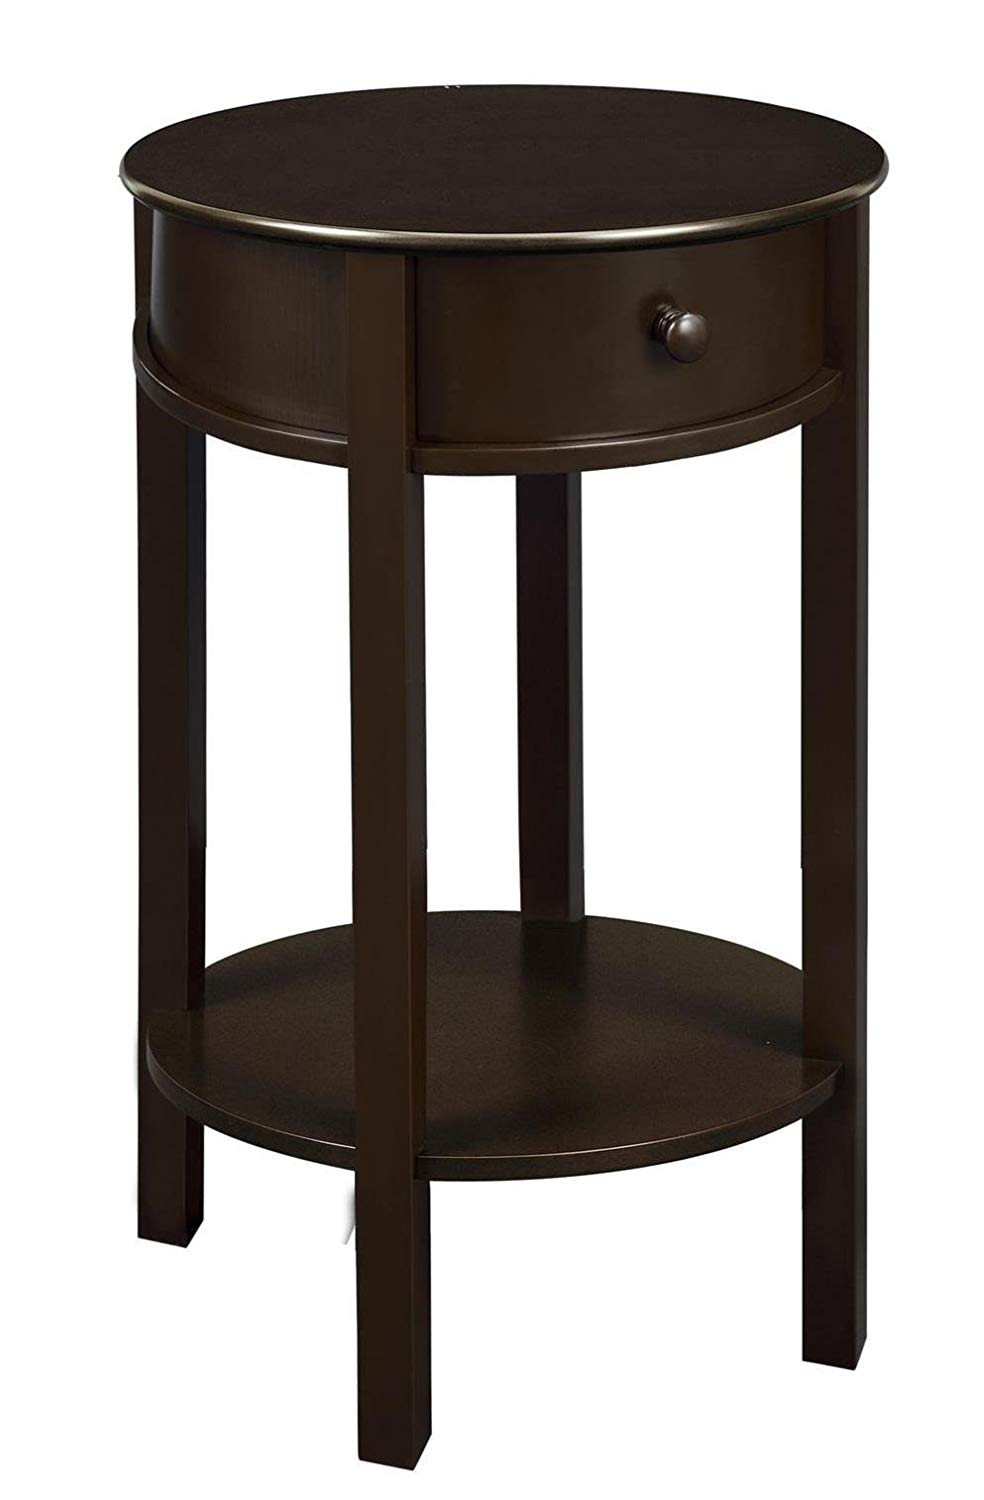 ameriwood home tipton round accent table espresso kyill tall kitchen dining pier candles closeout patio furniture cool living room tables square clear coffee kids edmonton folding